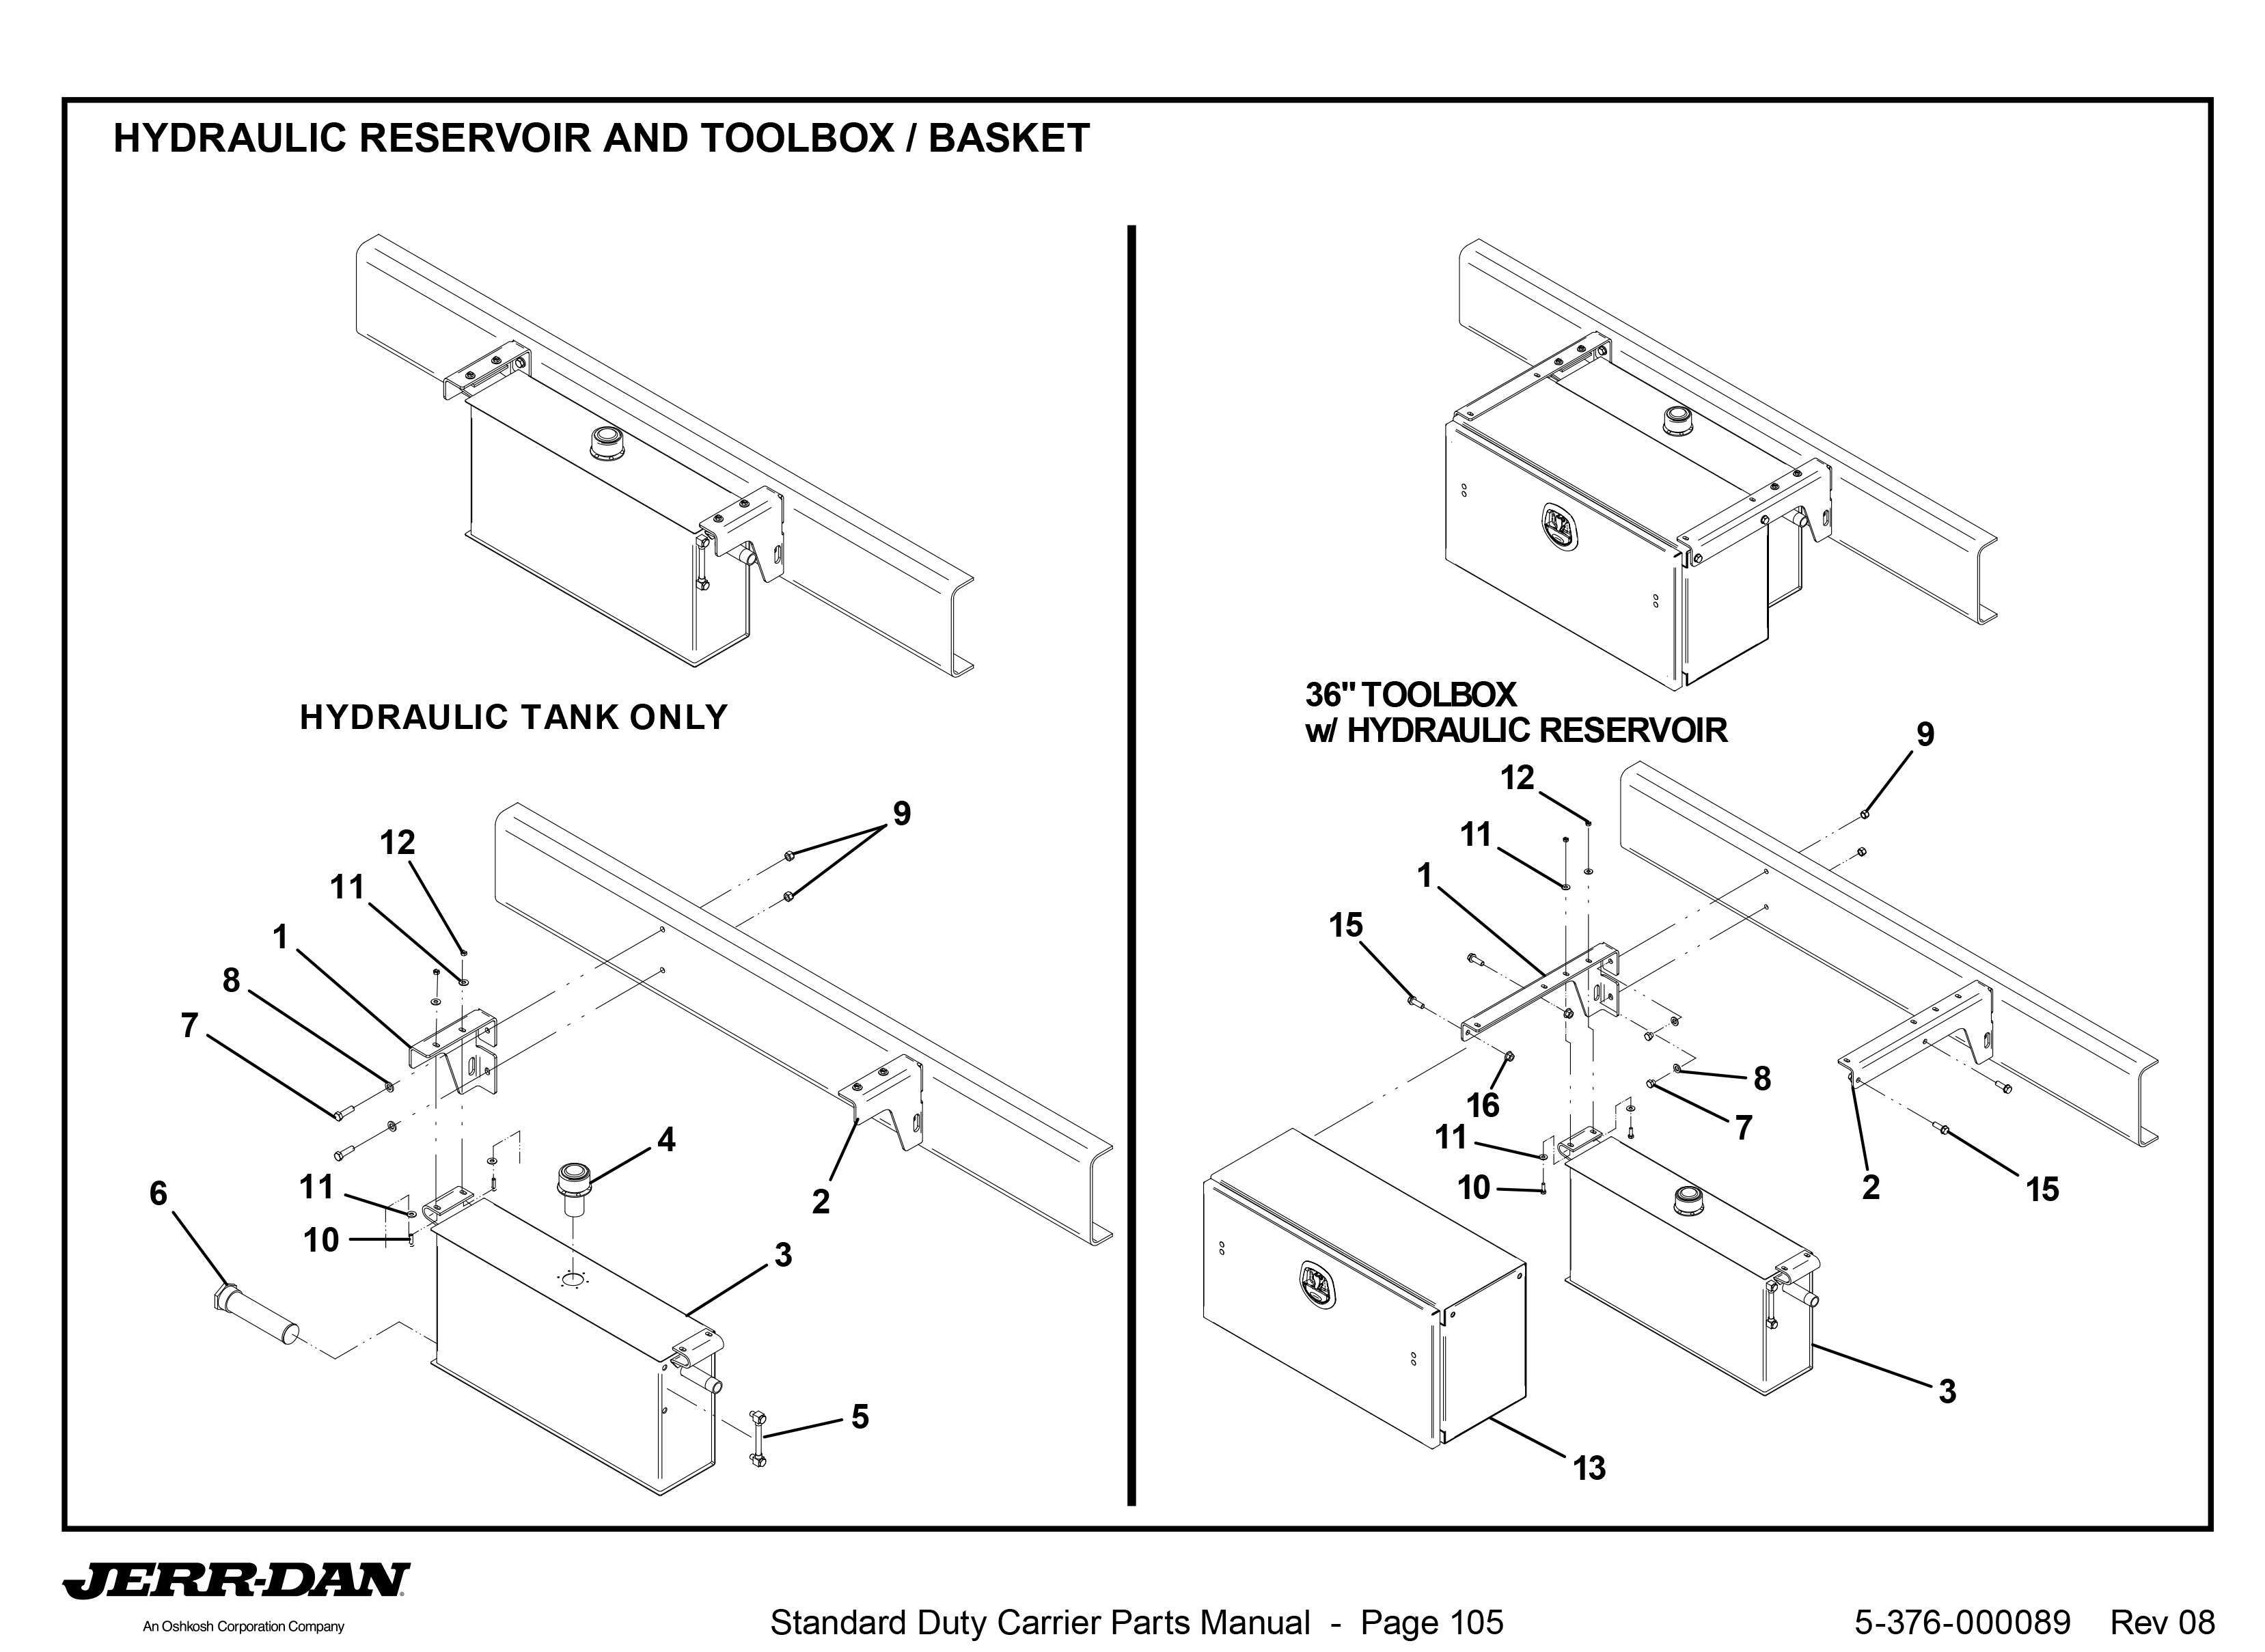 Mounting Bracket - Long (Part 2)